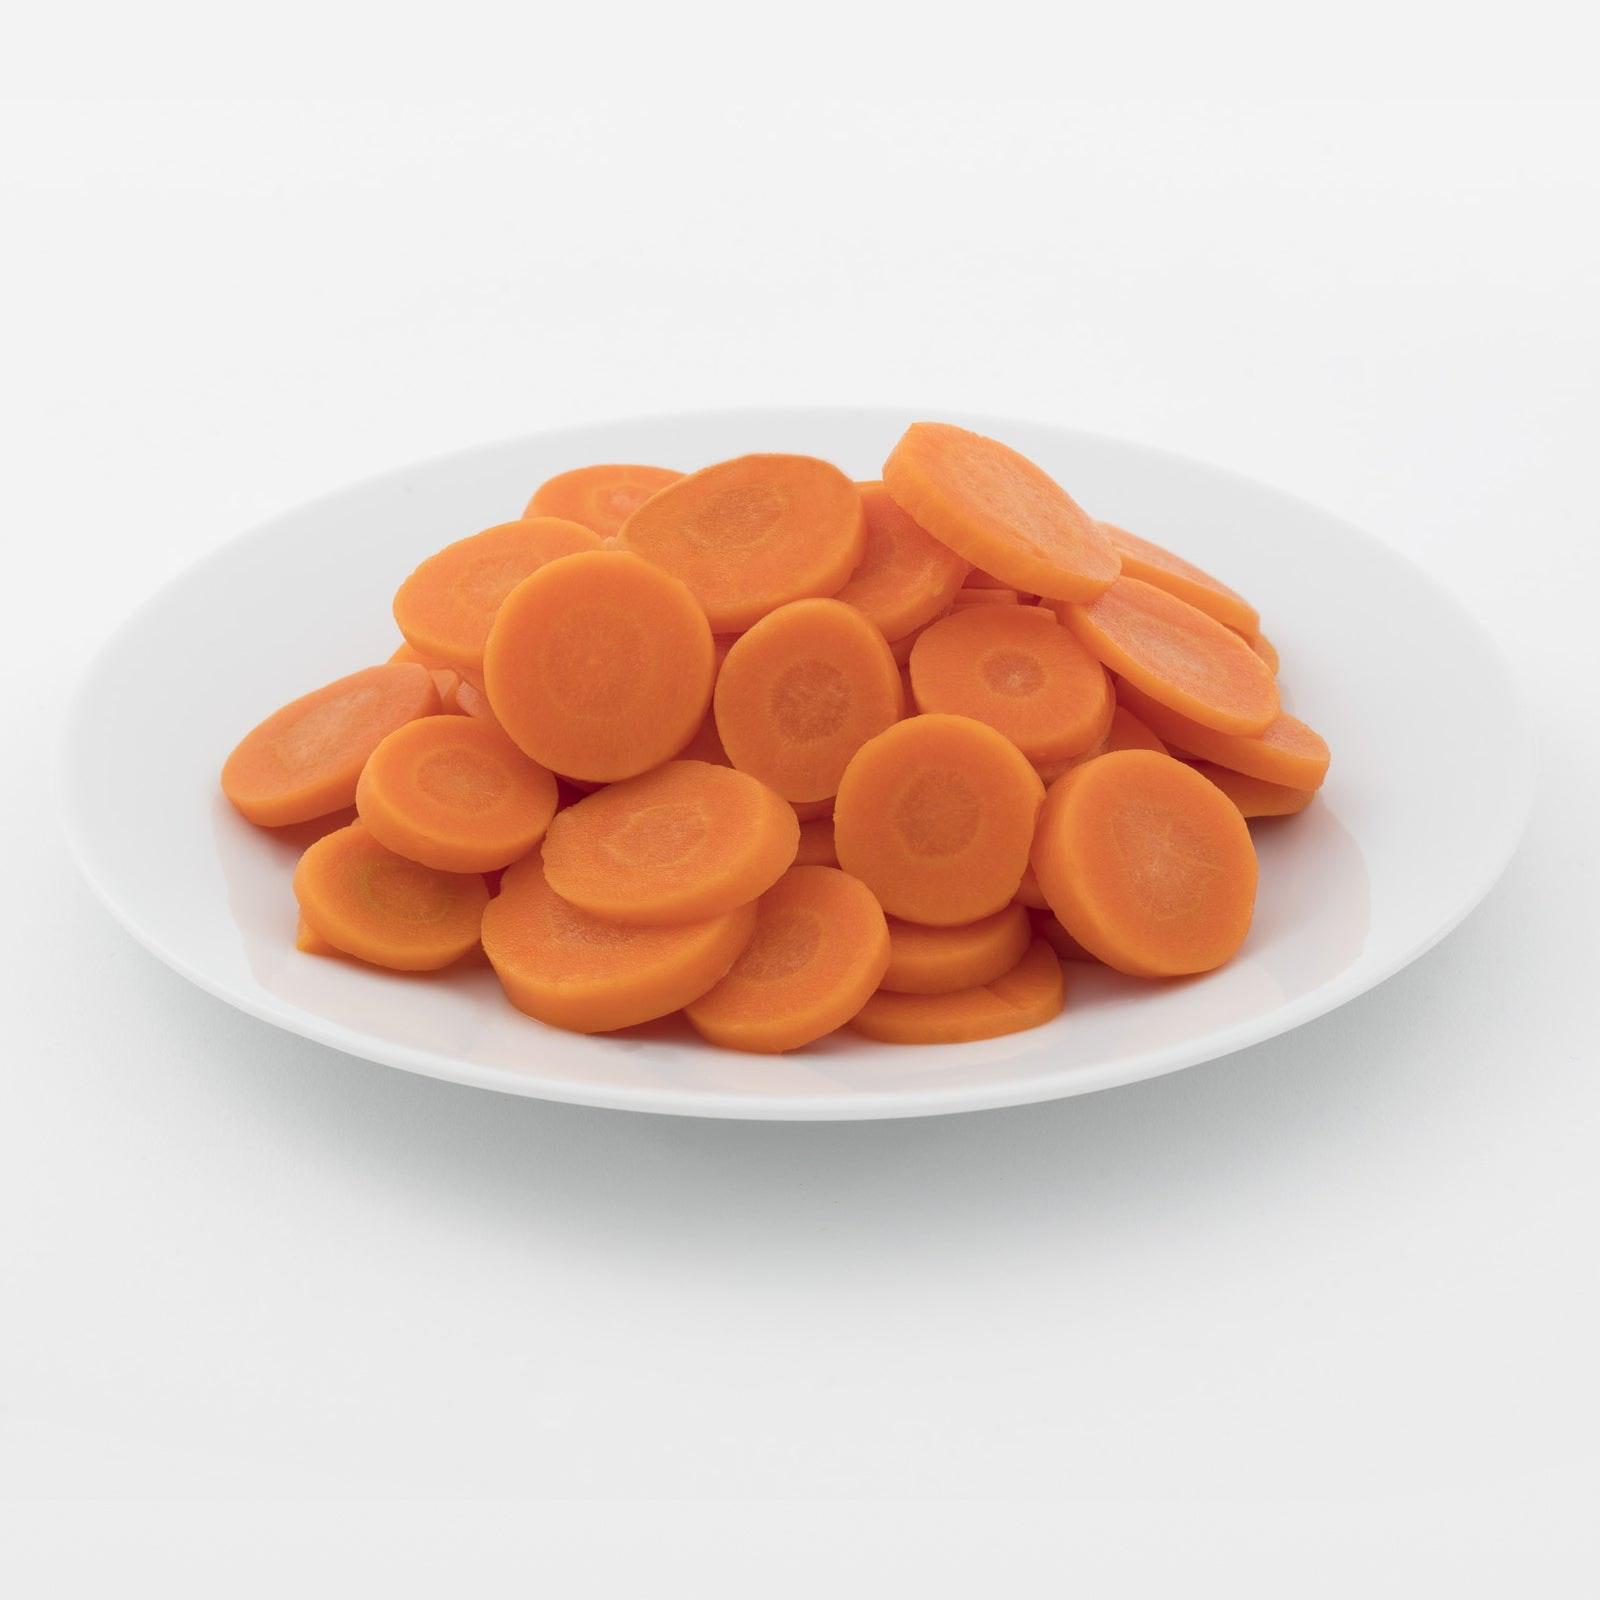 BELOW ZERO Sliced carrots